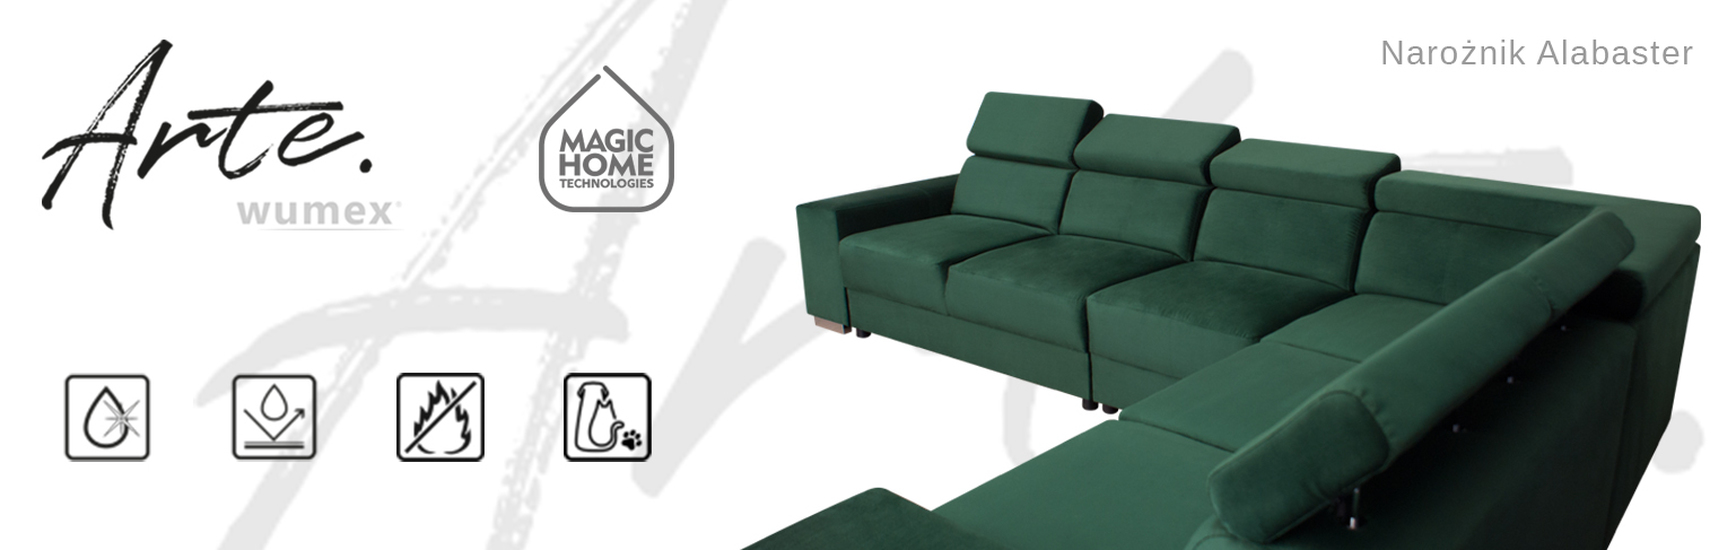 arte-design-magic-home-fargotex-naroznik-wumex24